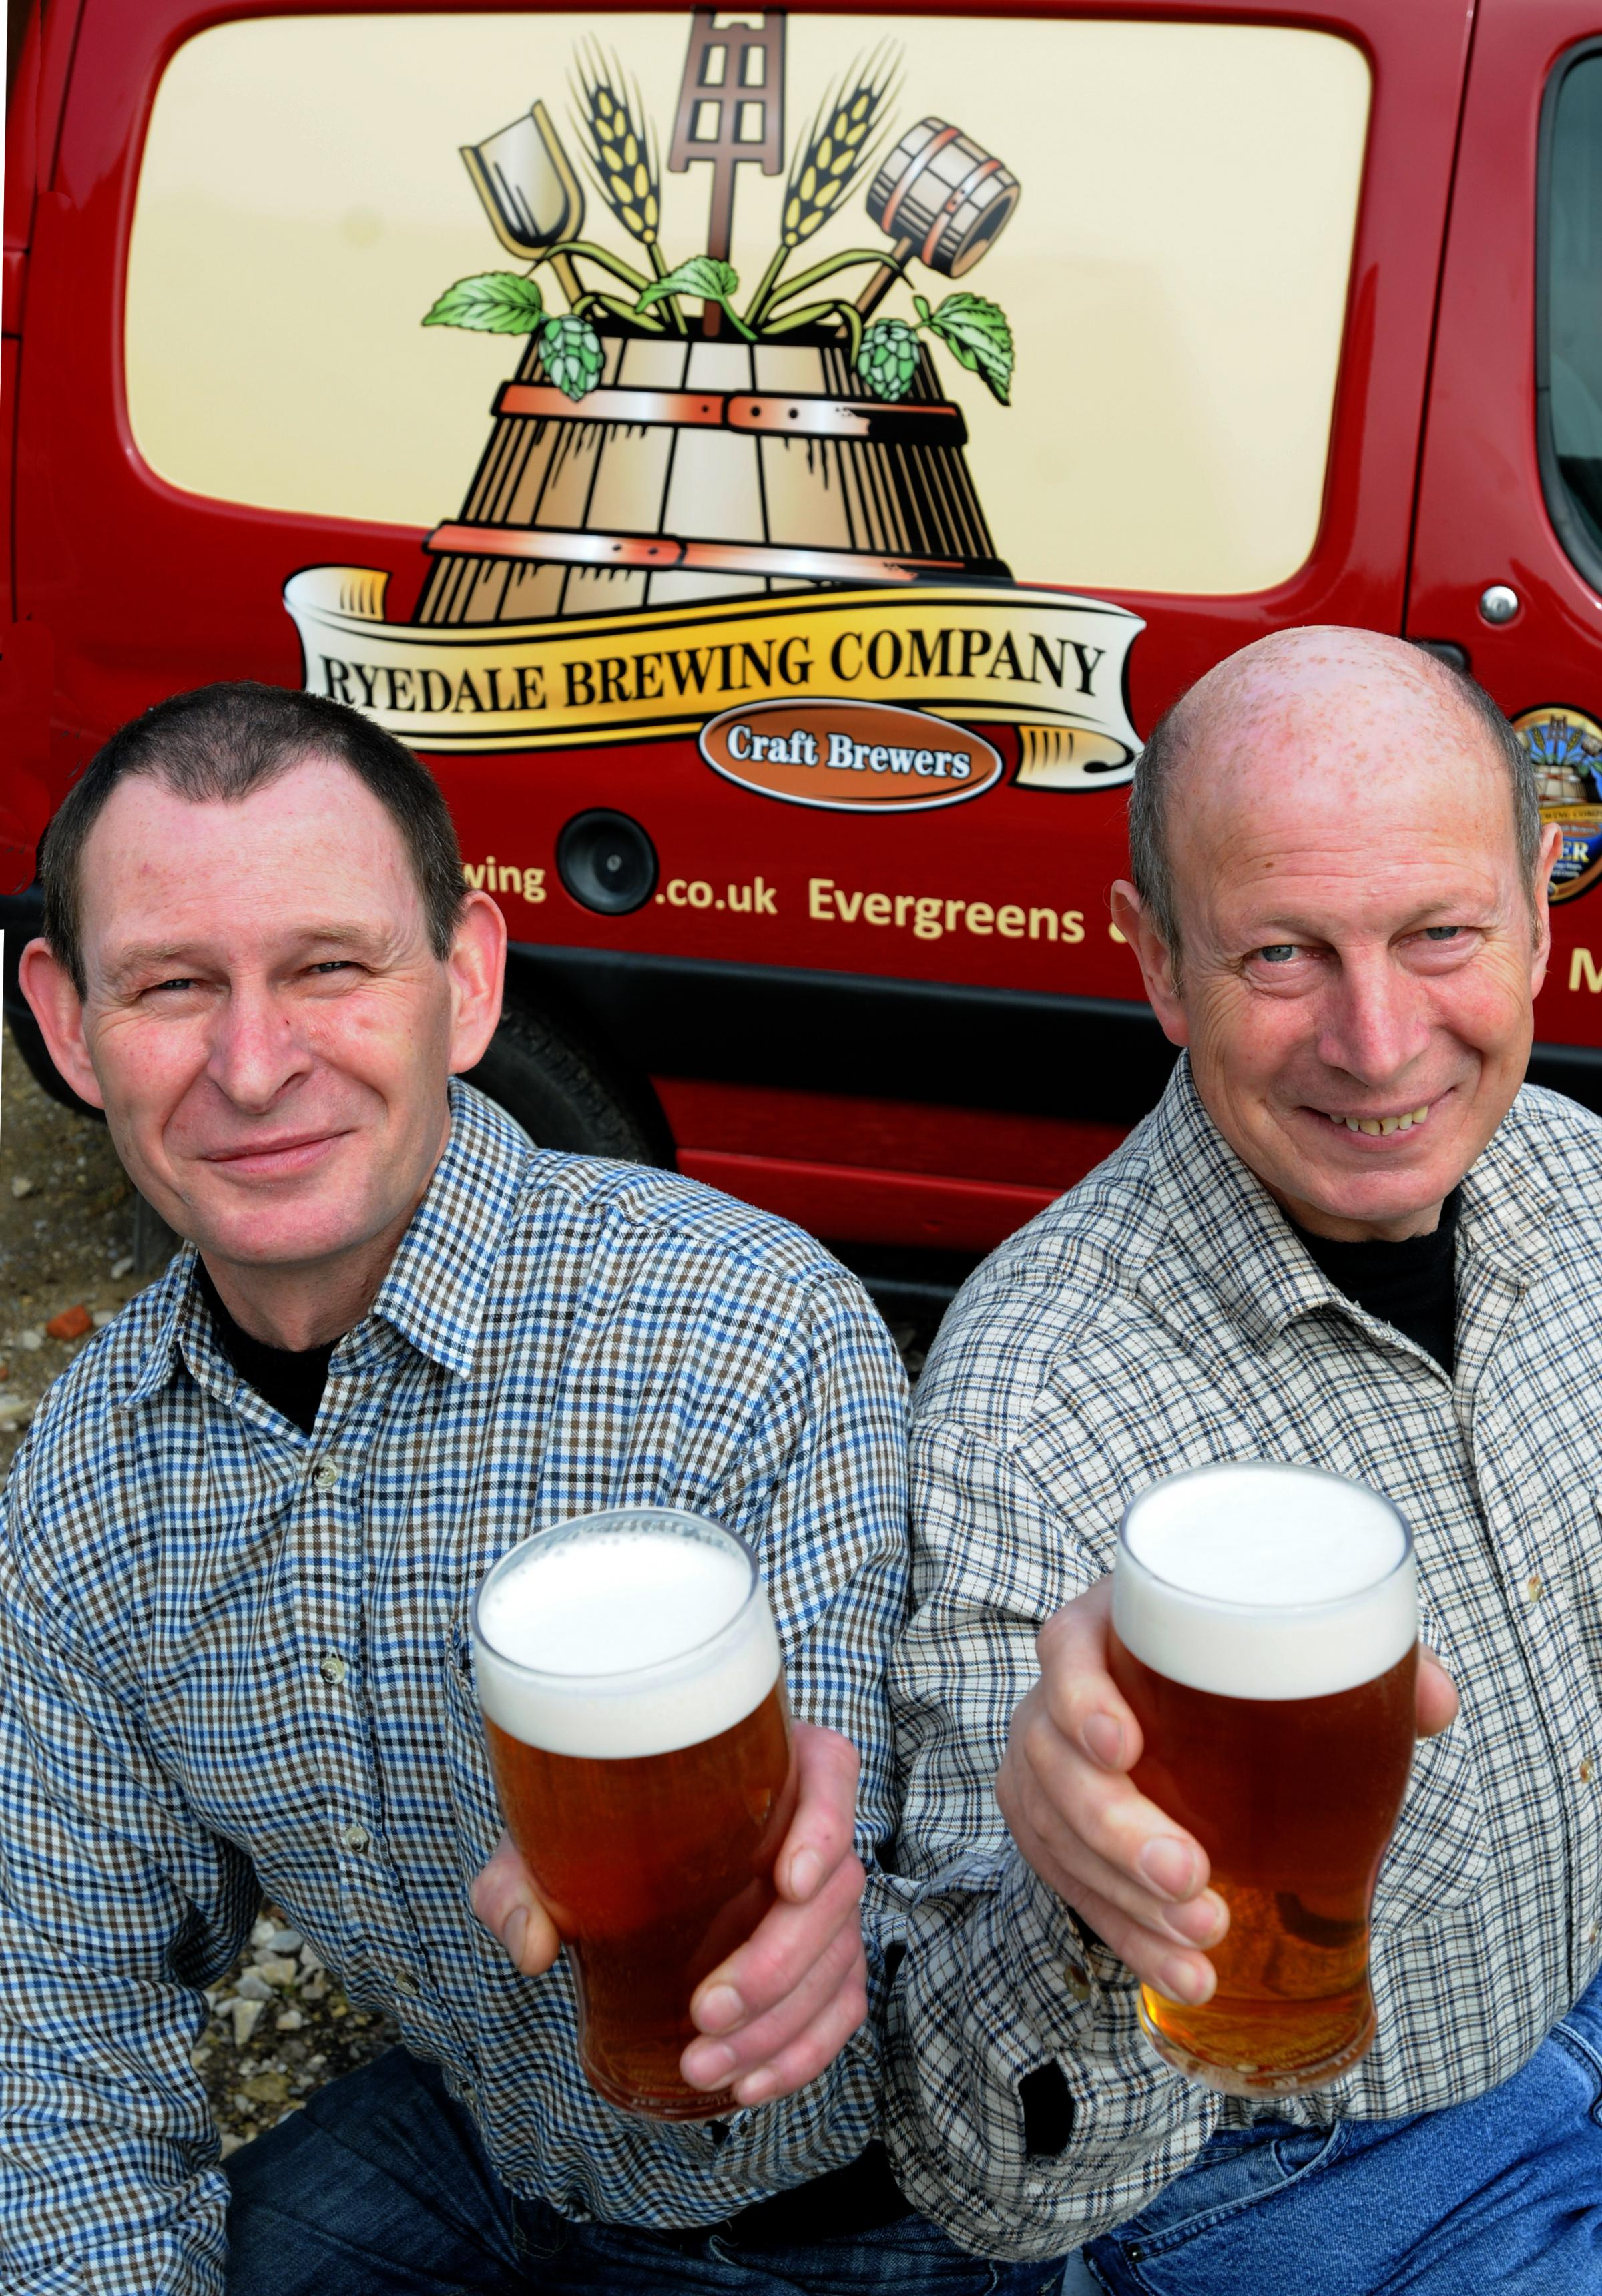 Brothers set up brewing business